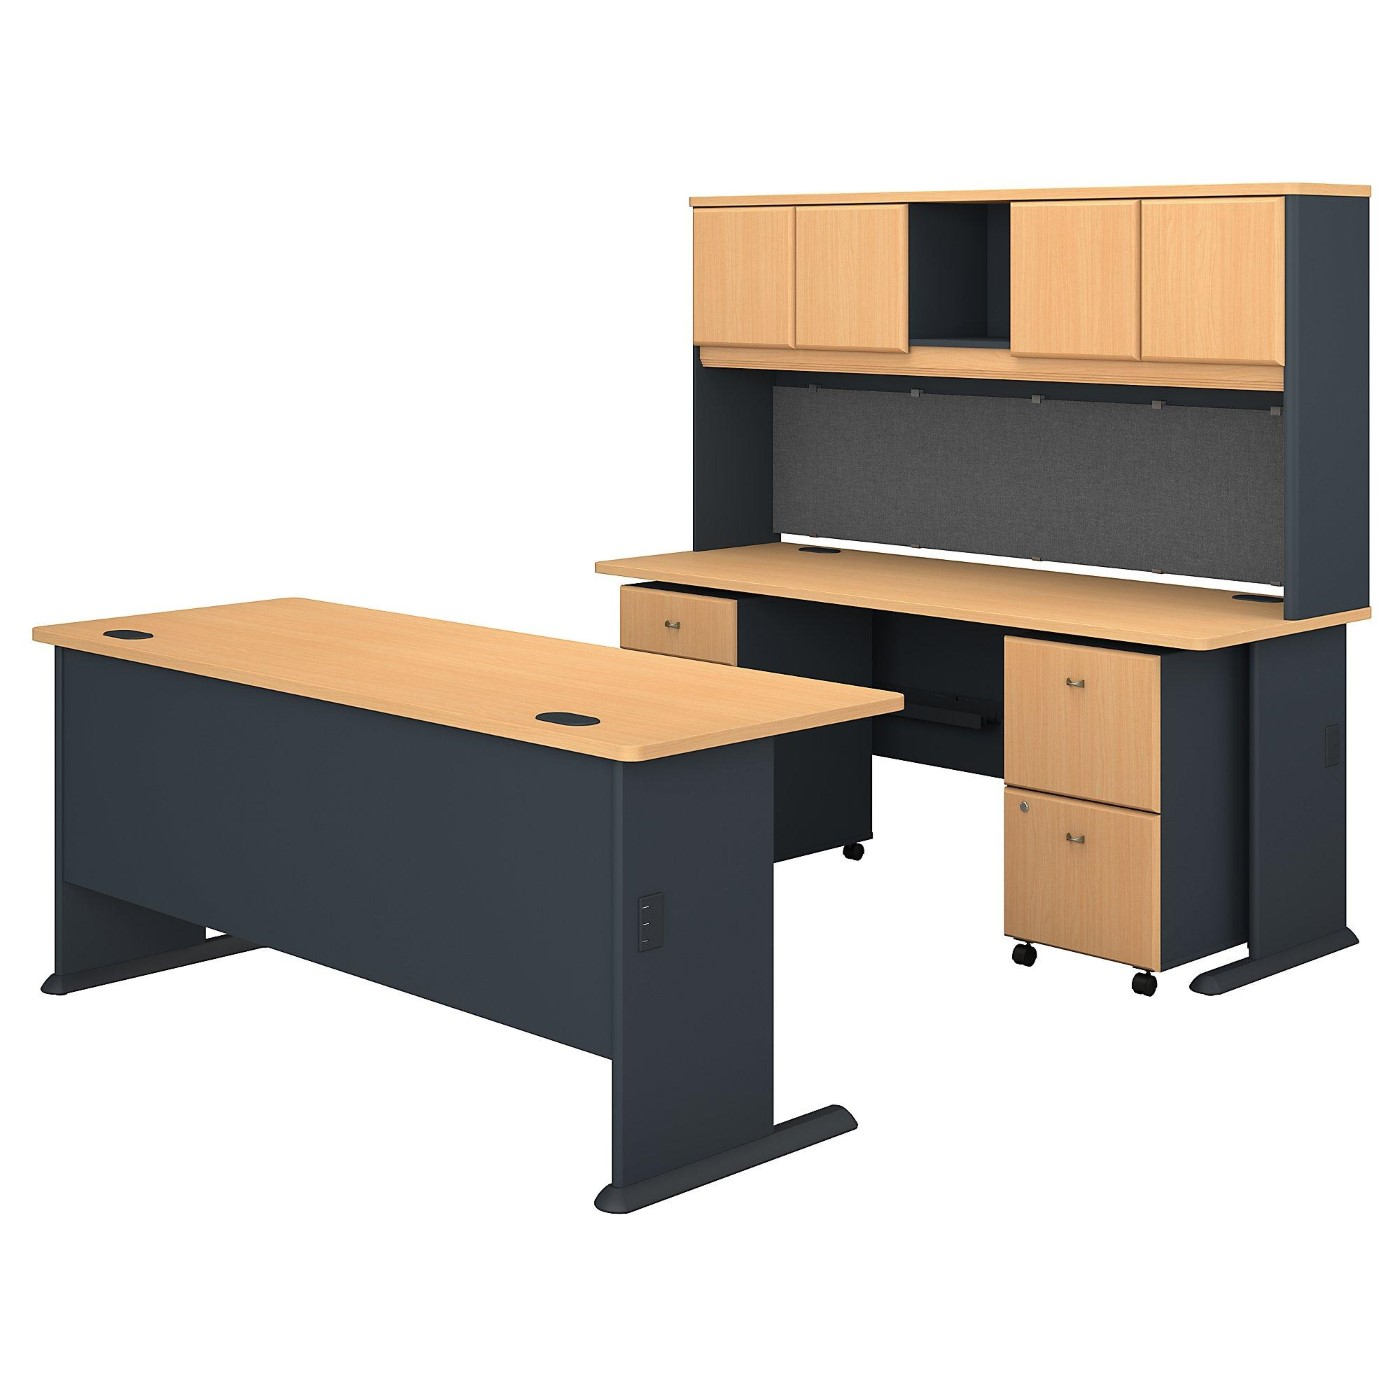 BUSH BUSINESS FURNITURE SERIES A 72W DESKS WITH HUTCH AND MOBILE FILE CABINETS. FREE SHIPPING</font></b></font>&#x1F384<font color=red><b>ERGONOMICHOME HOLIDAY SALE - ENDS DEC. 17, 2019</b></font>&#x1F384